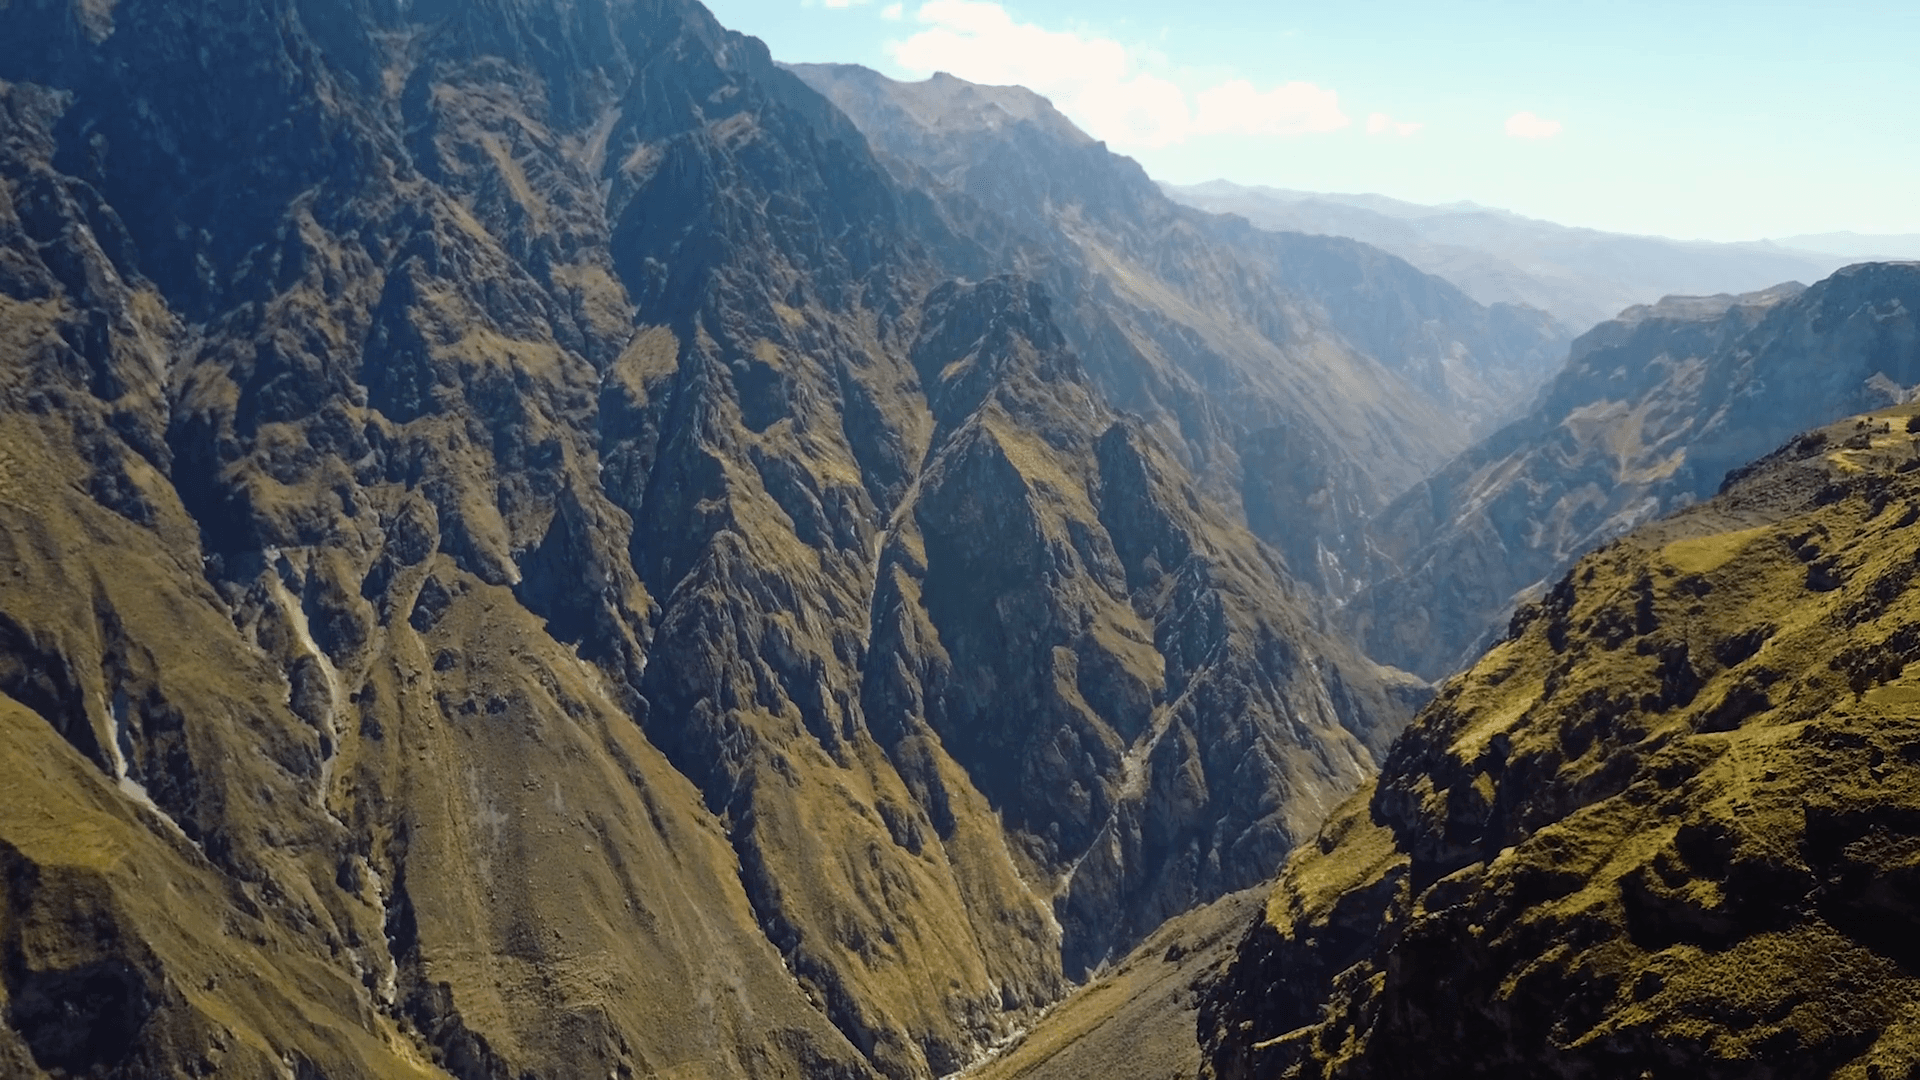 Slow drone aerial flying over the stunning Colca Canyon in Peru